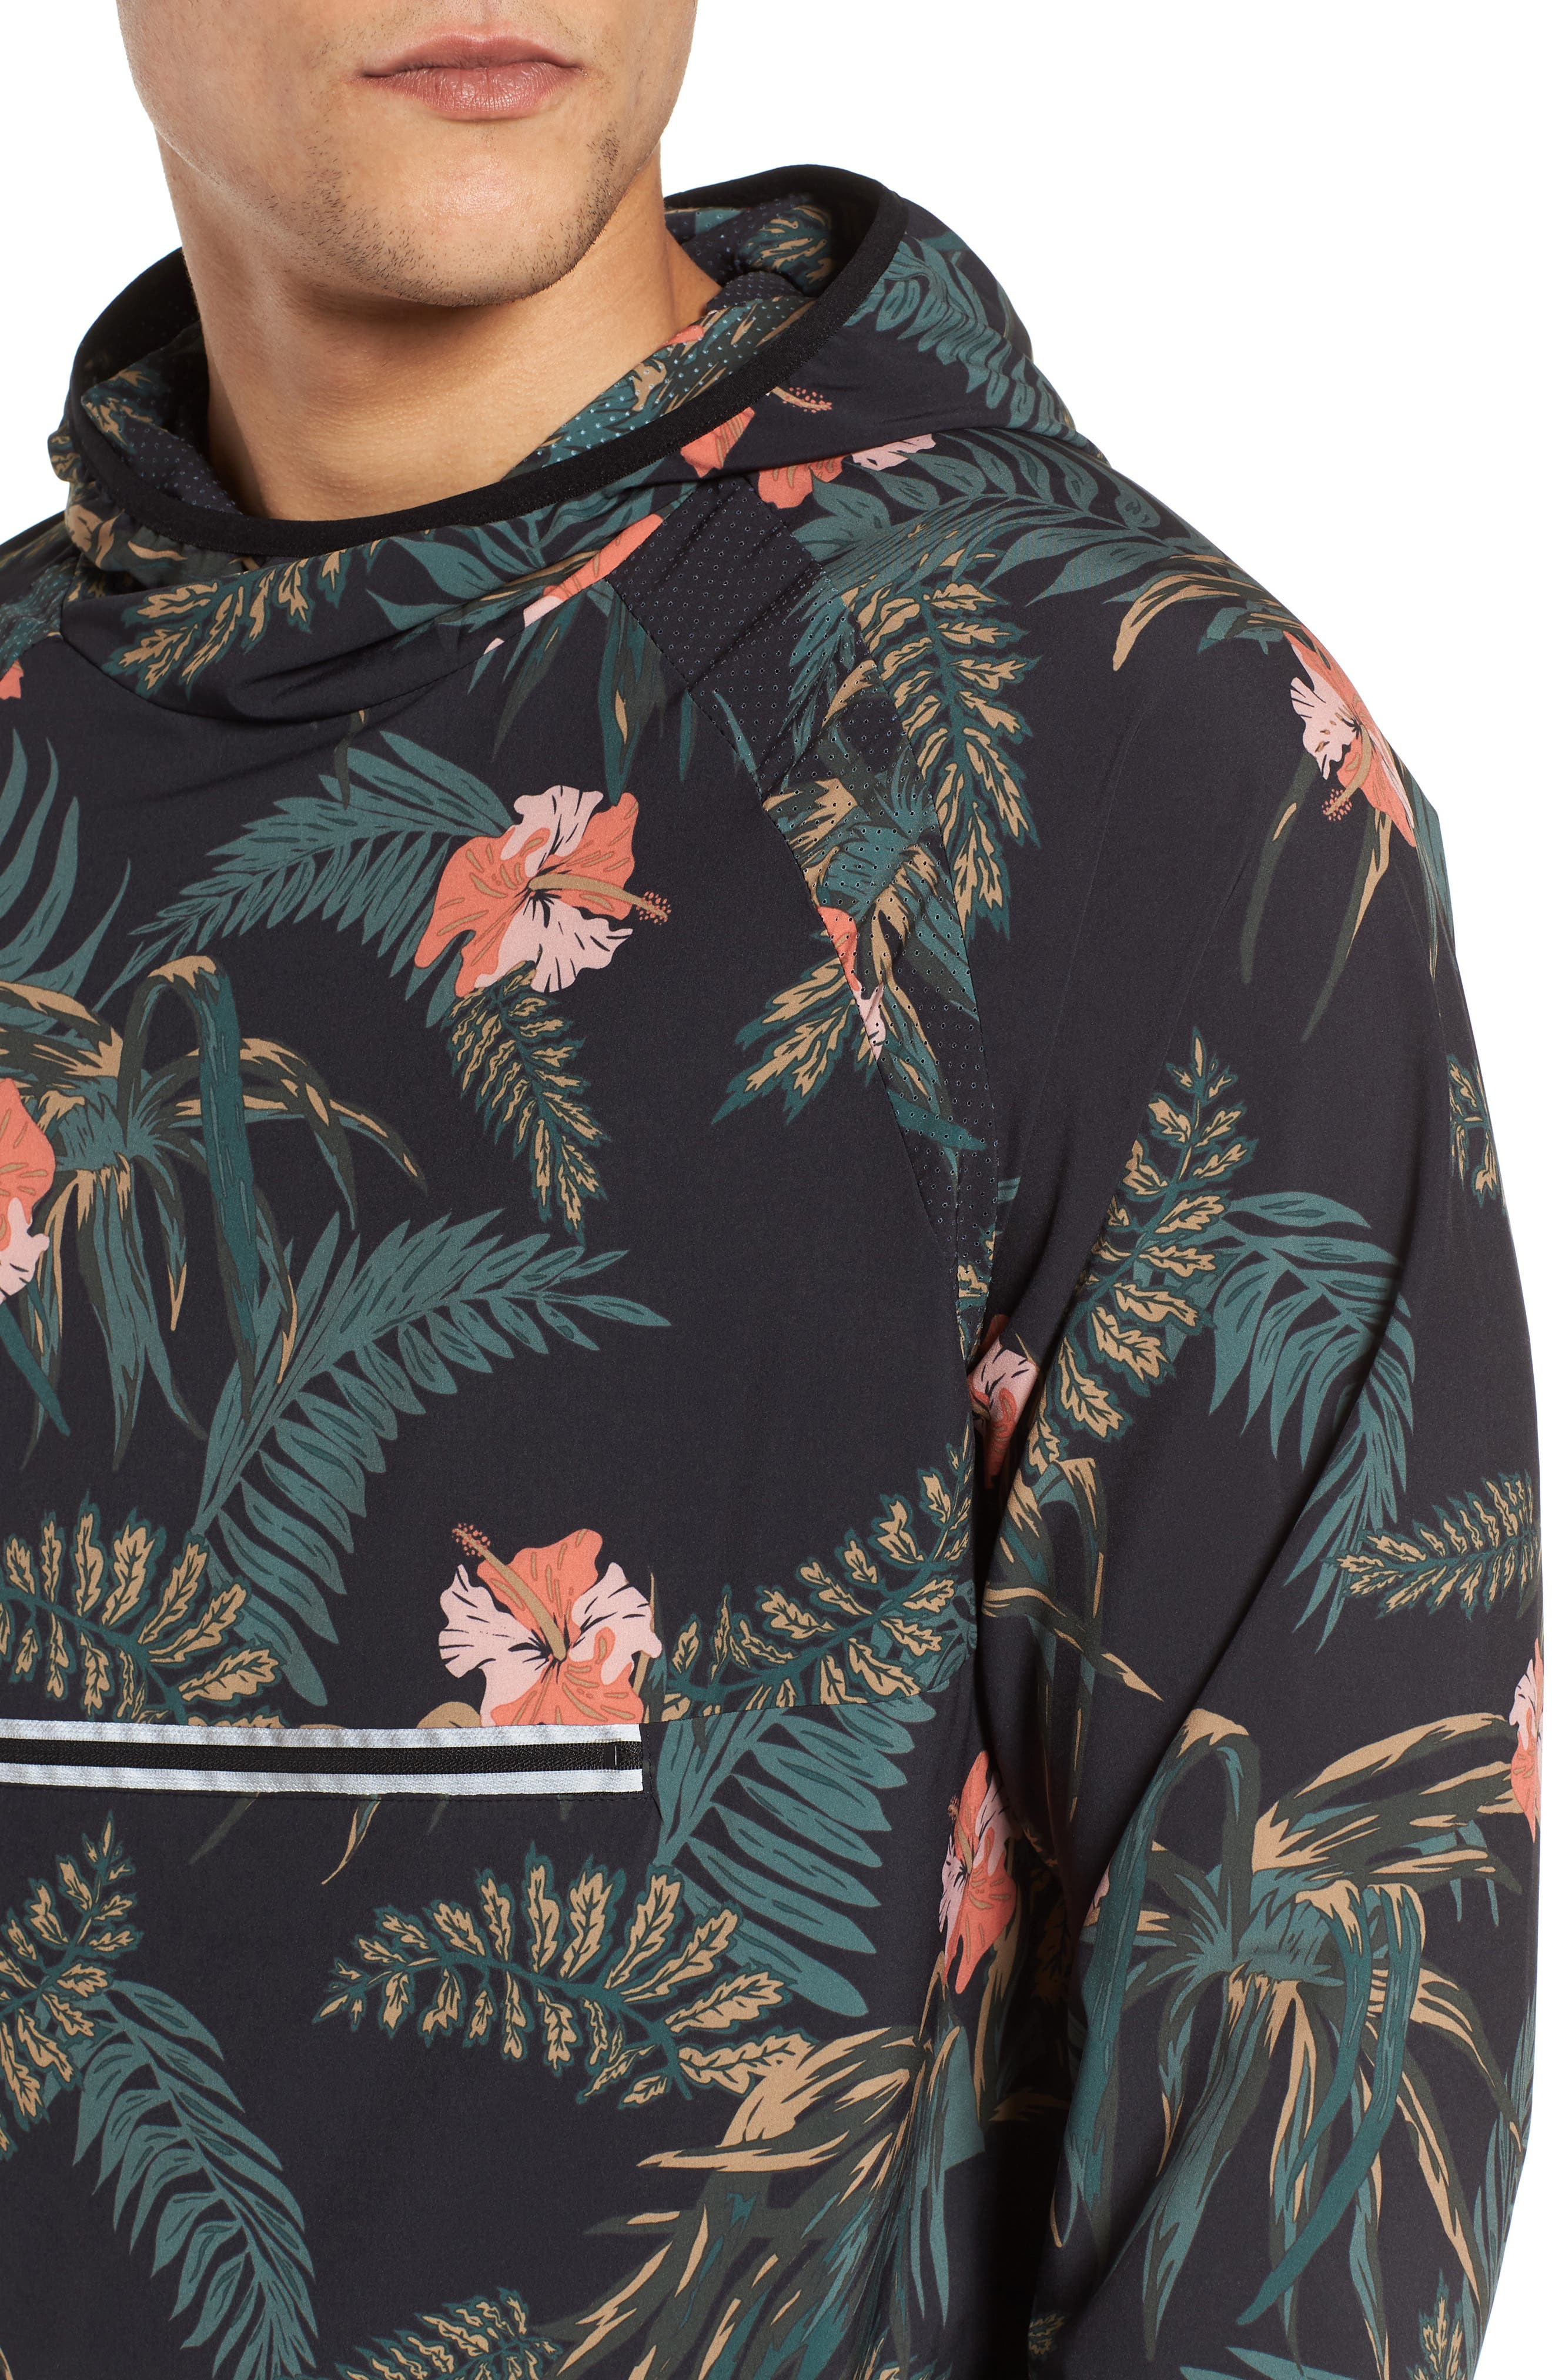 Ignite Pullover,                             Alternate thumbnail 4, color,                             Floral/ Multi